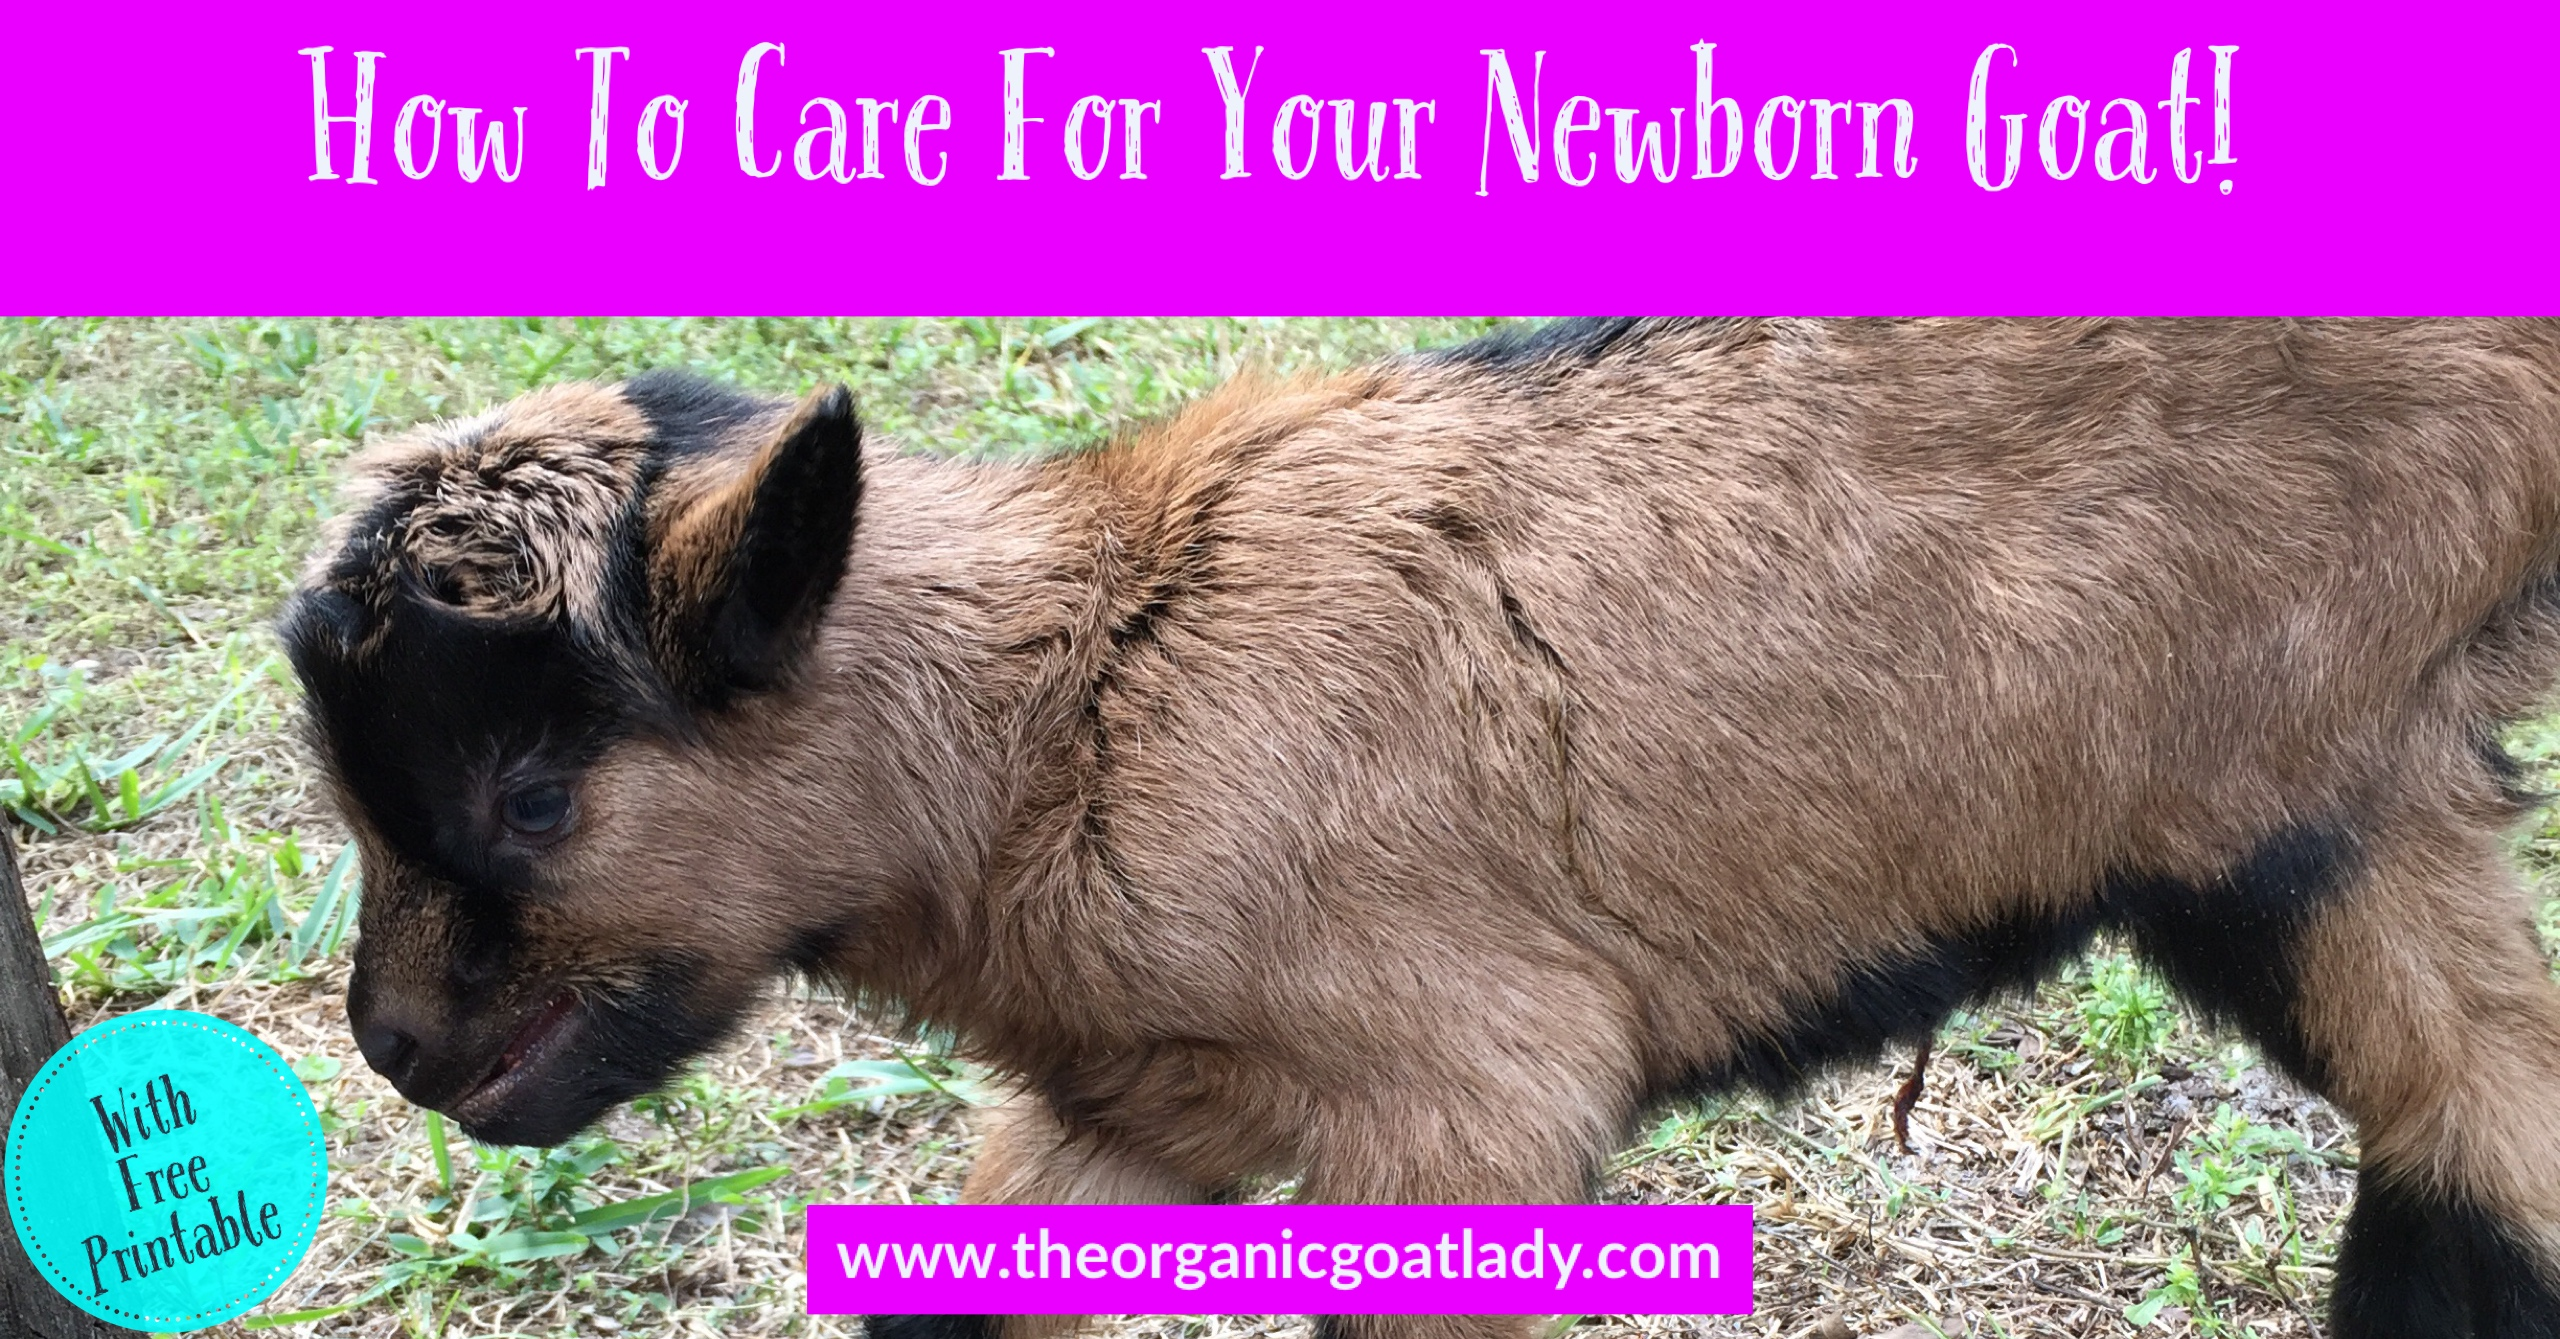 How To Care For Your Newborn Goat!